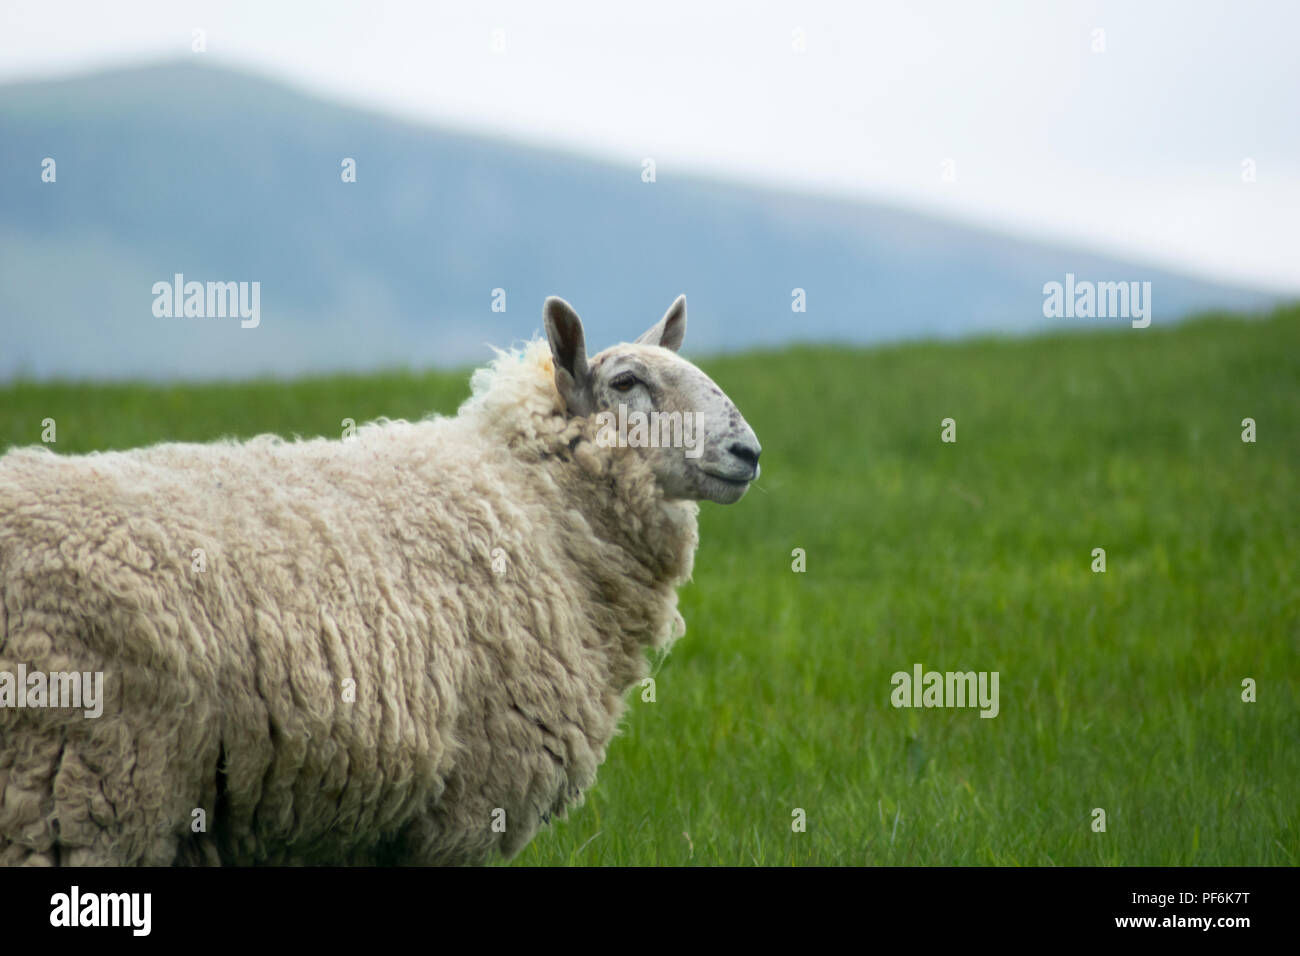 sheep in the irish country side grazing outdoors in a meadow - Stock Image